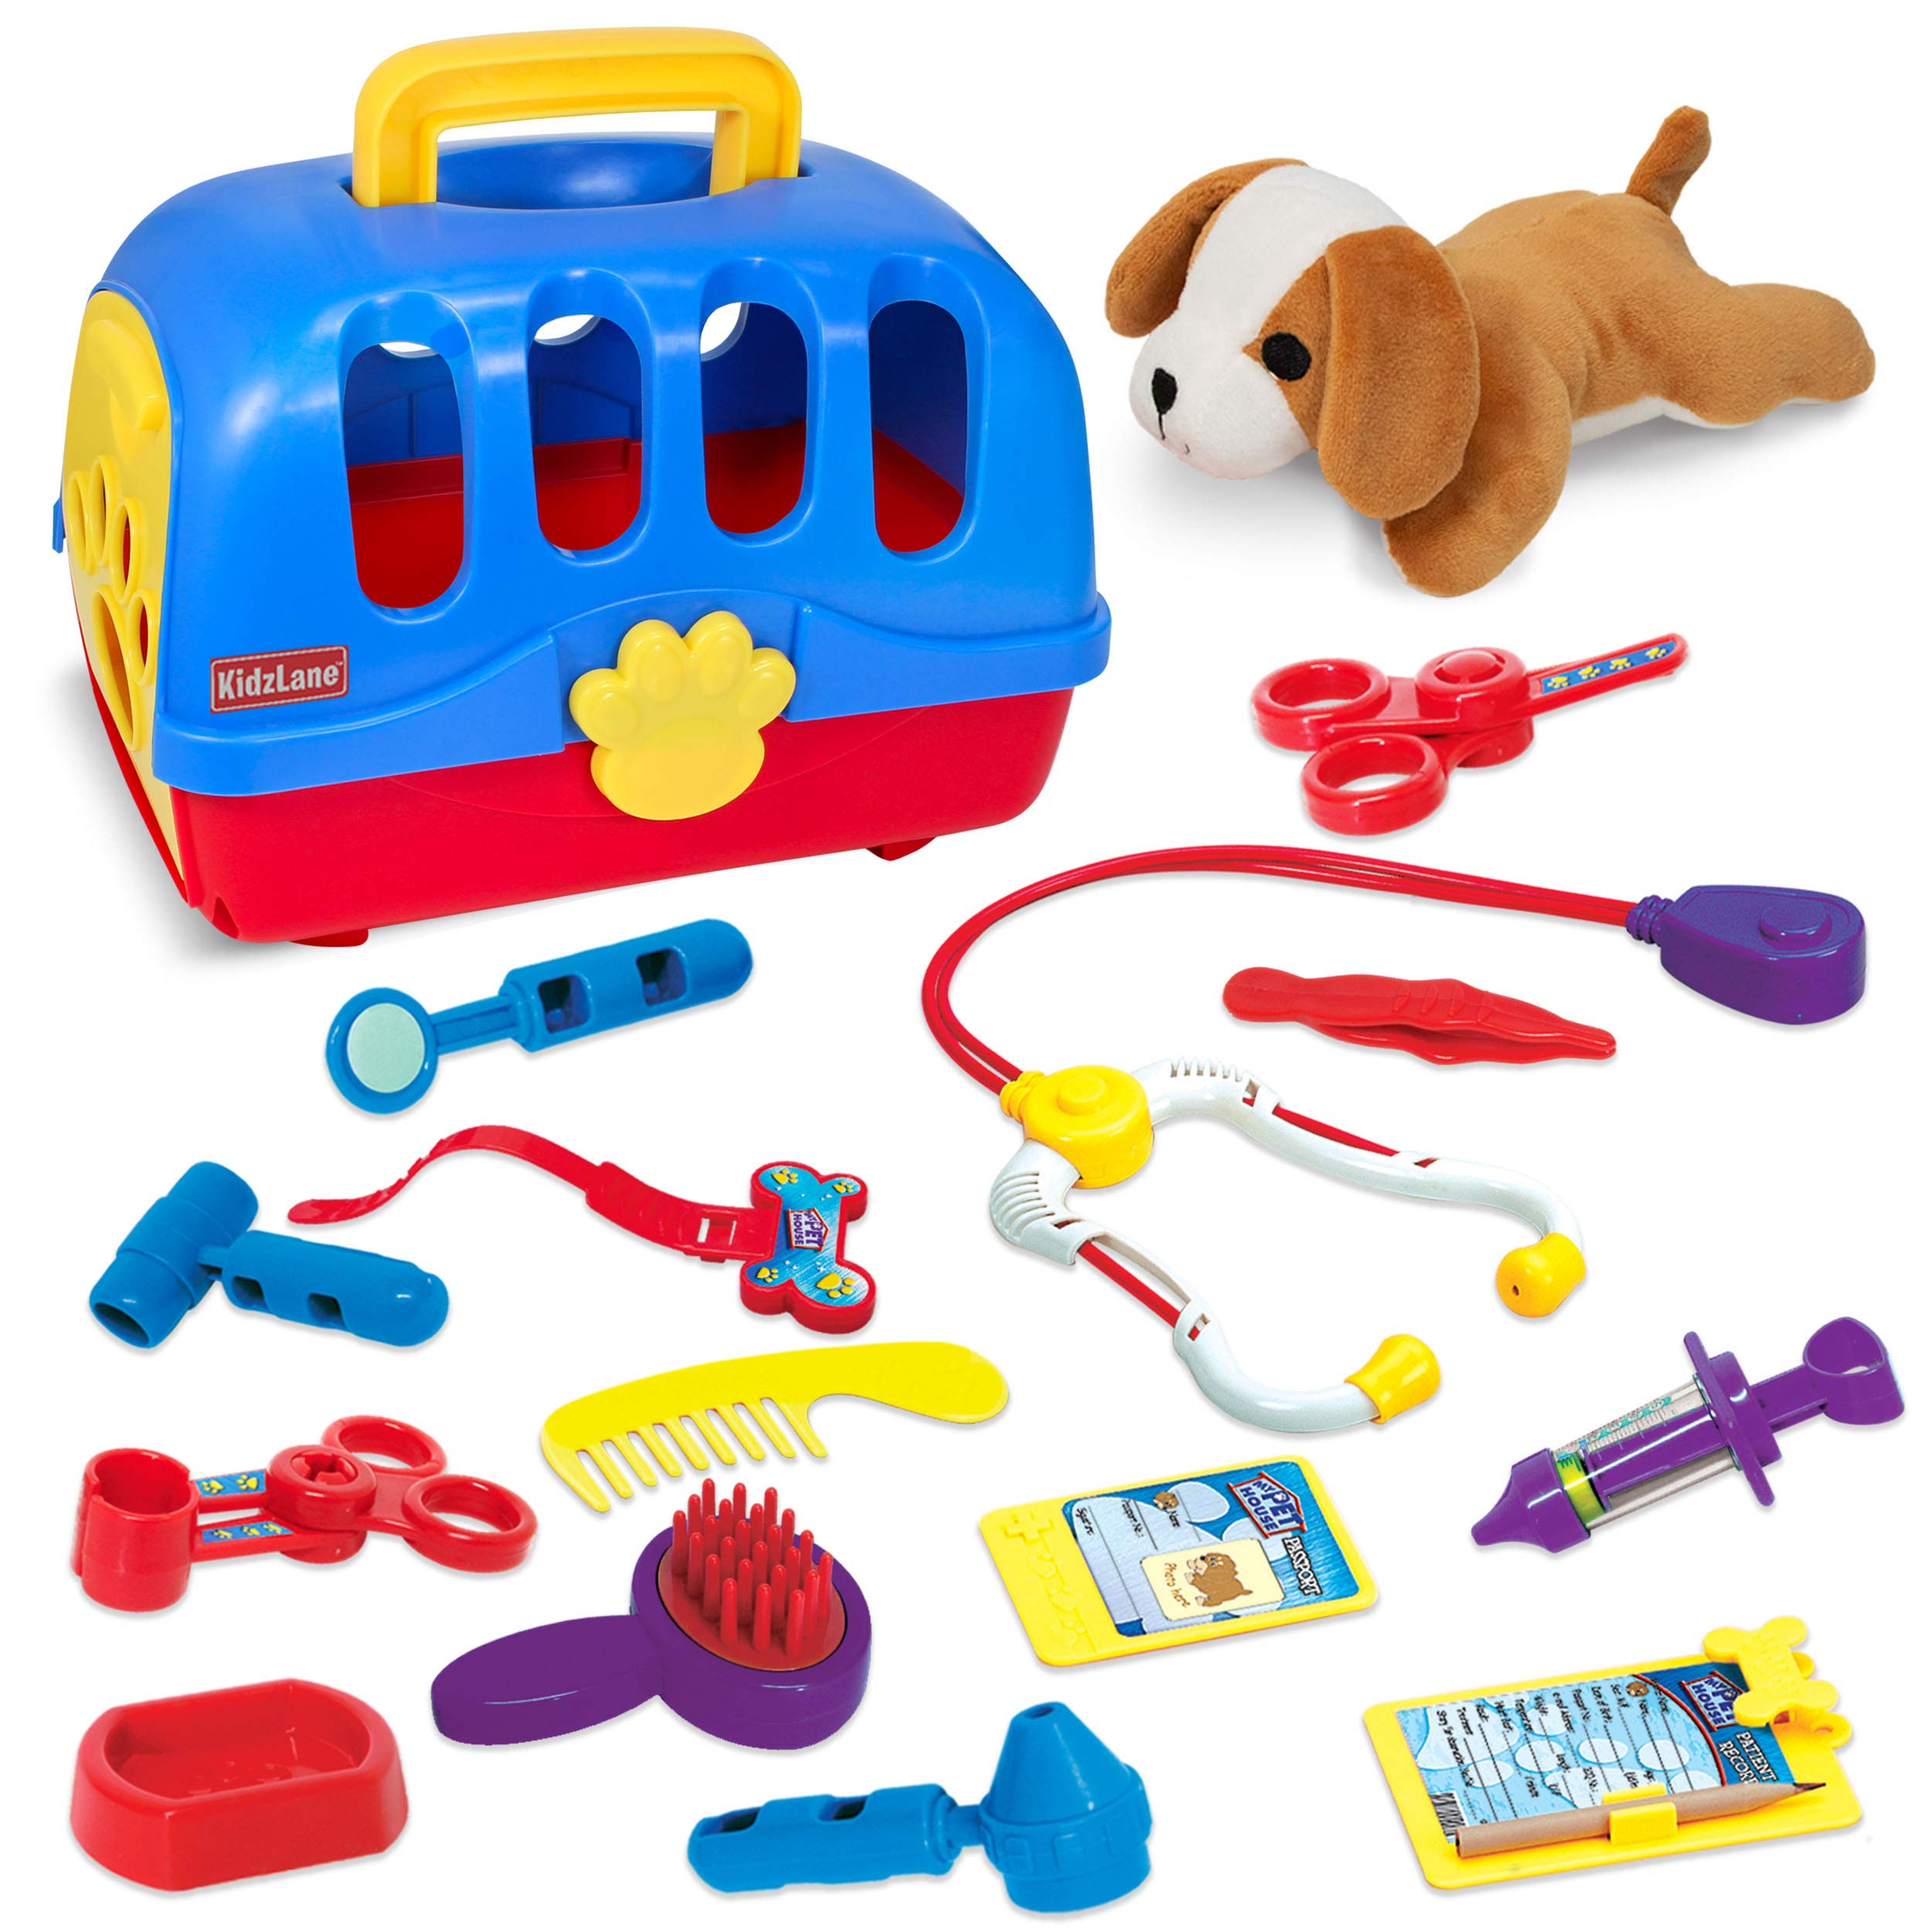 Kidzlane Pretend Veterinarian Doctor Kit for Toddlers and Kids - Realistic Pet Vet Play Set with 3-in-1 Carrier, Exam Table & Storage Case